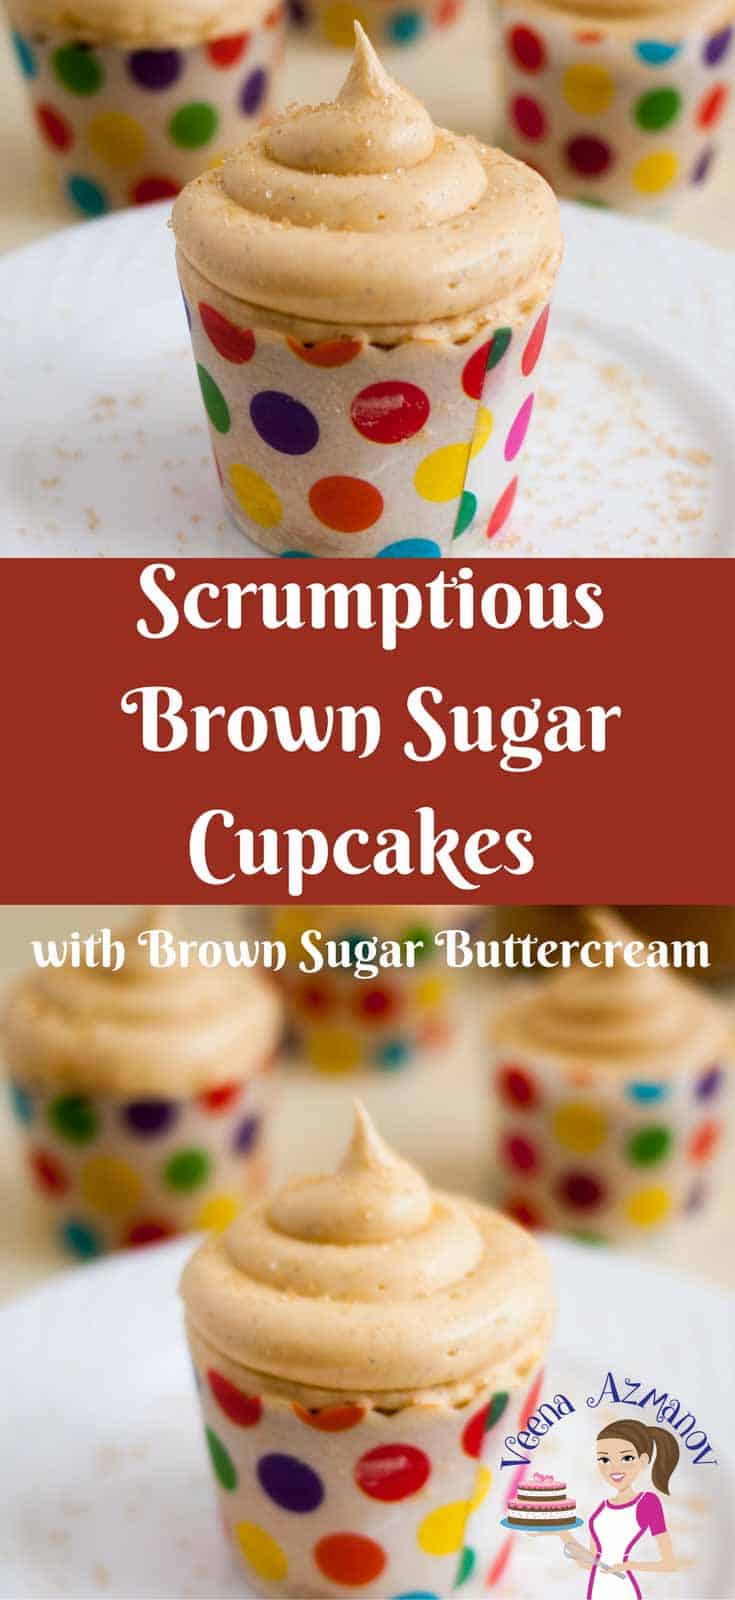 This Brown Sugar Cupcakes recipe takes the basic vanilla cupcake to a unique level. The molasses in the brown sugar add a unique flavor and gorgeous color to the cupcakes and buttercream.